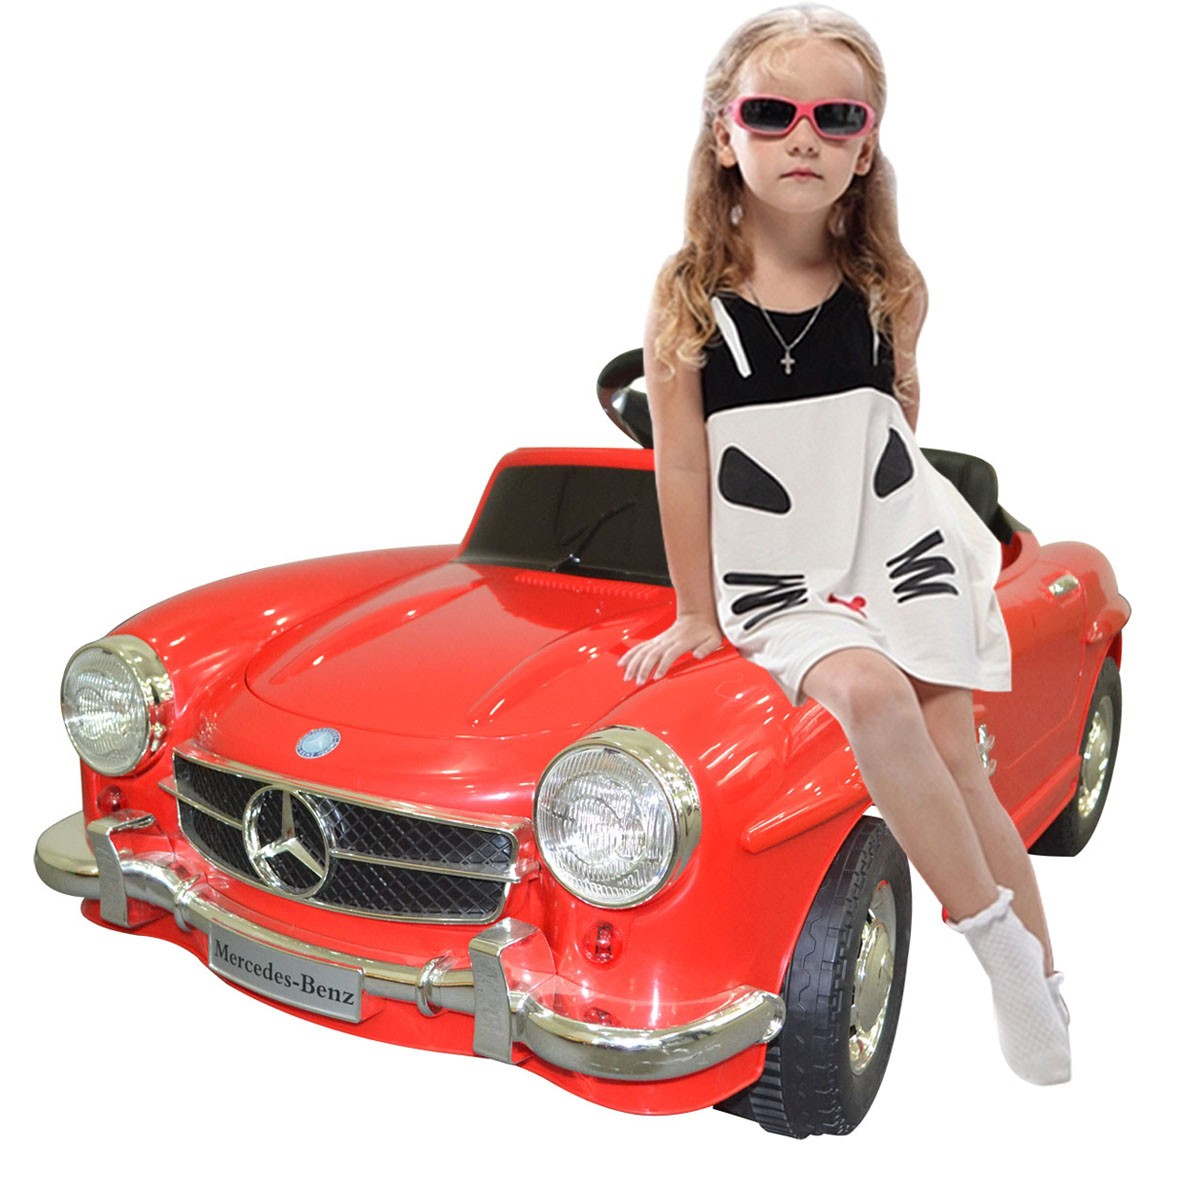 New mercedes benz 300sl amg rc electric toy kids baby ride for Mercedes benz ride on toy car